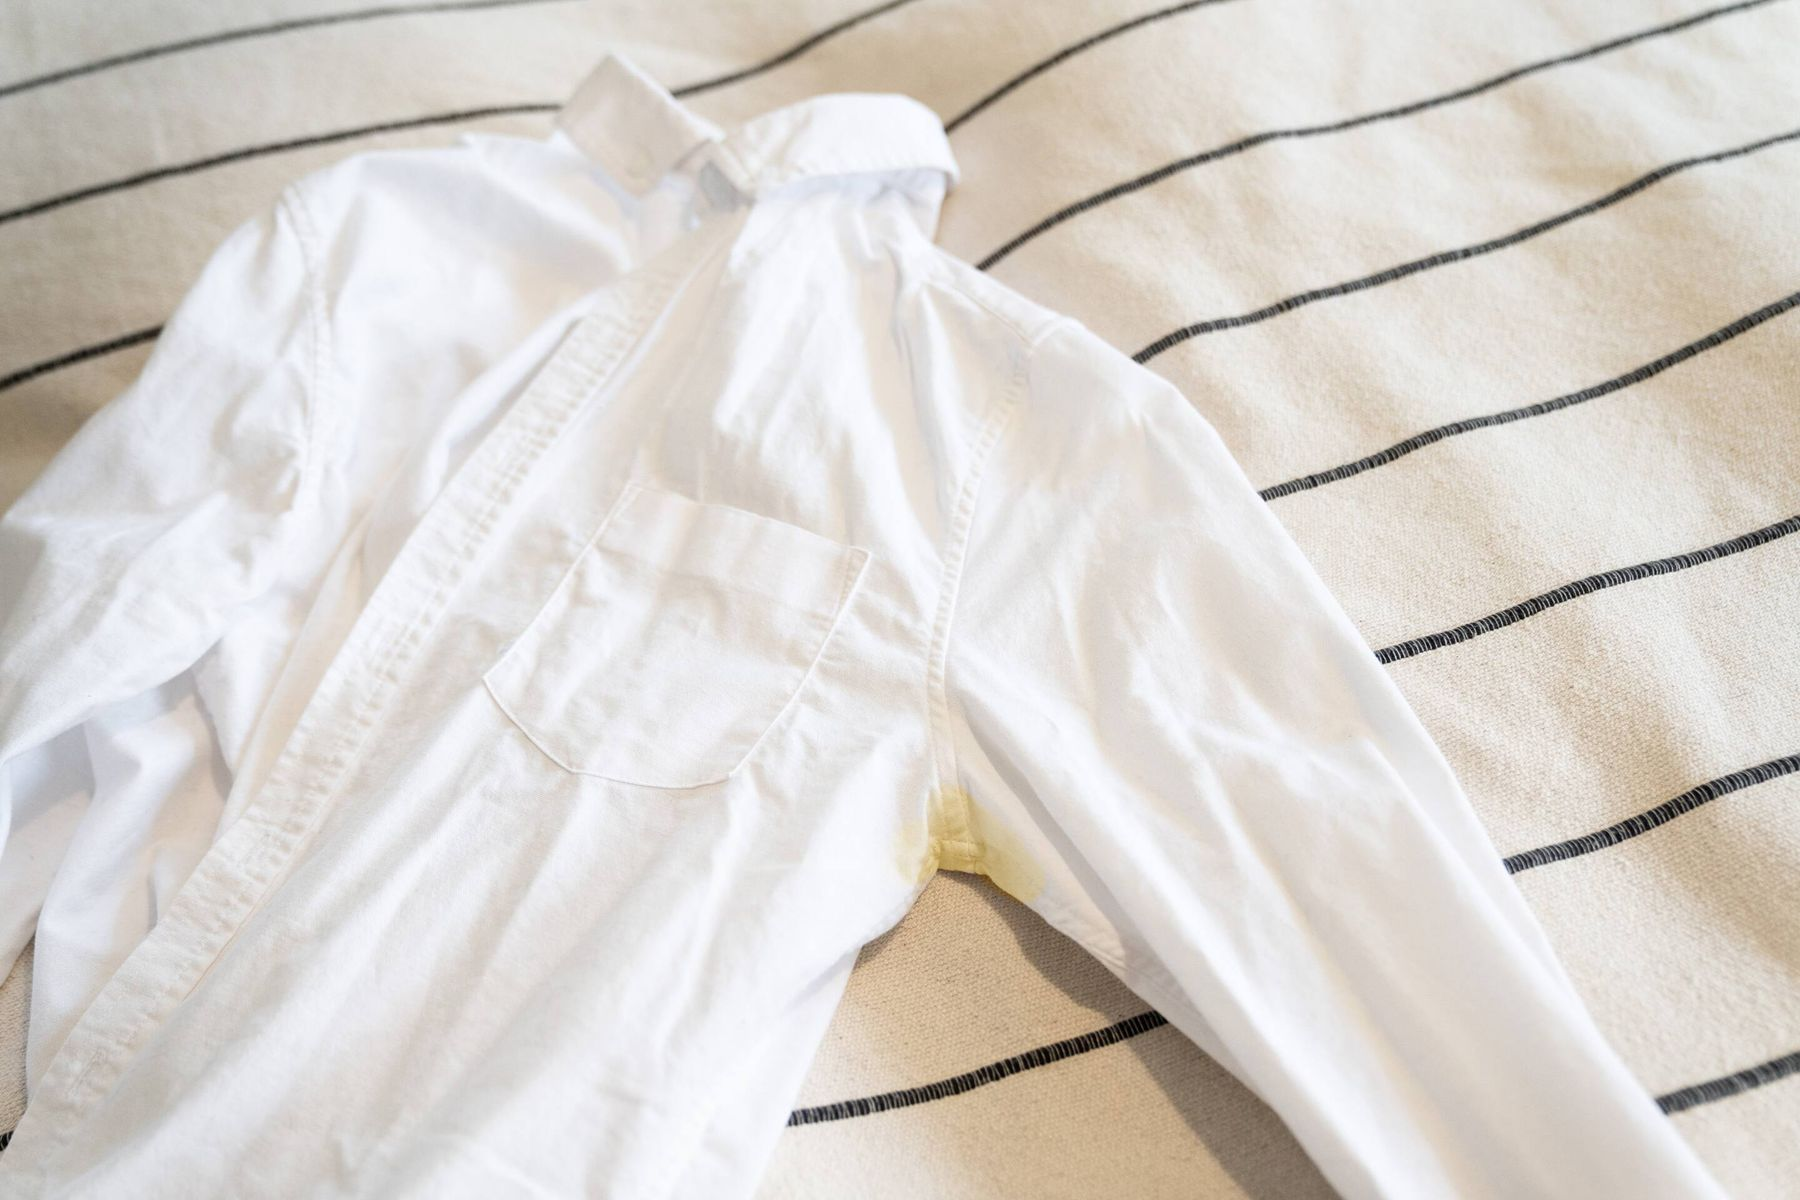 A white shirt with a yellow armpit stain